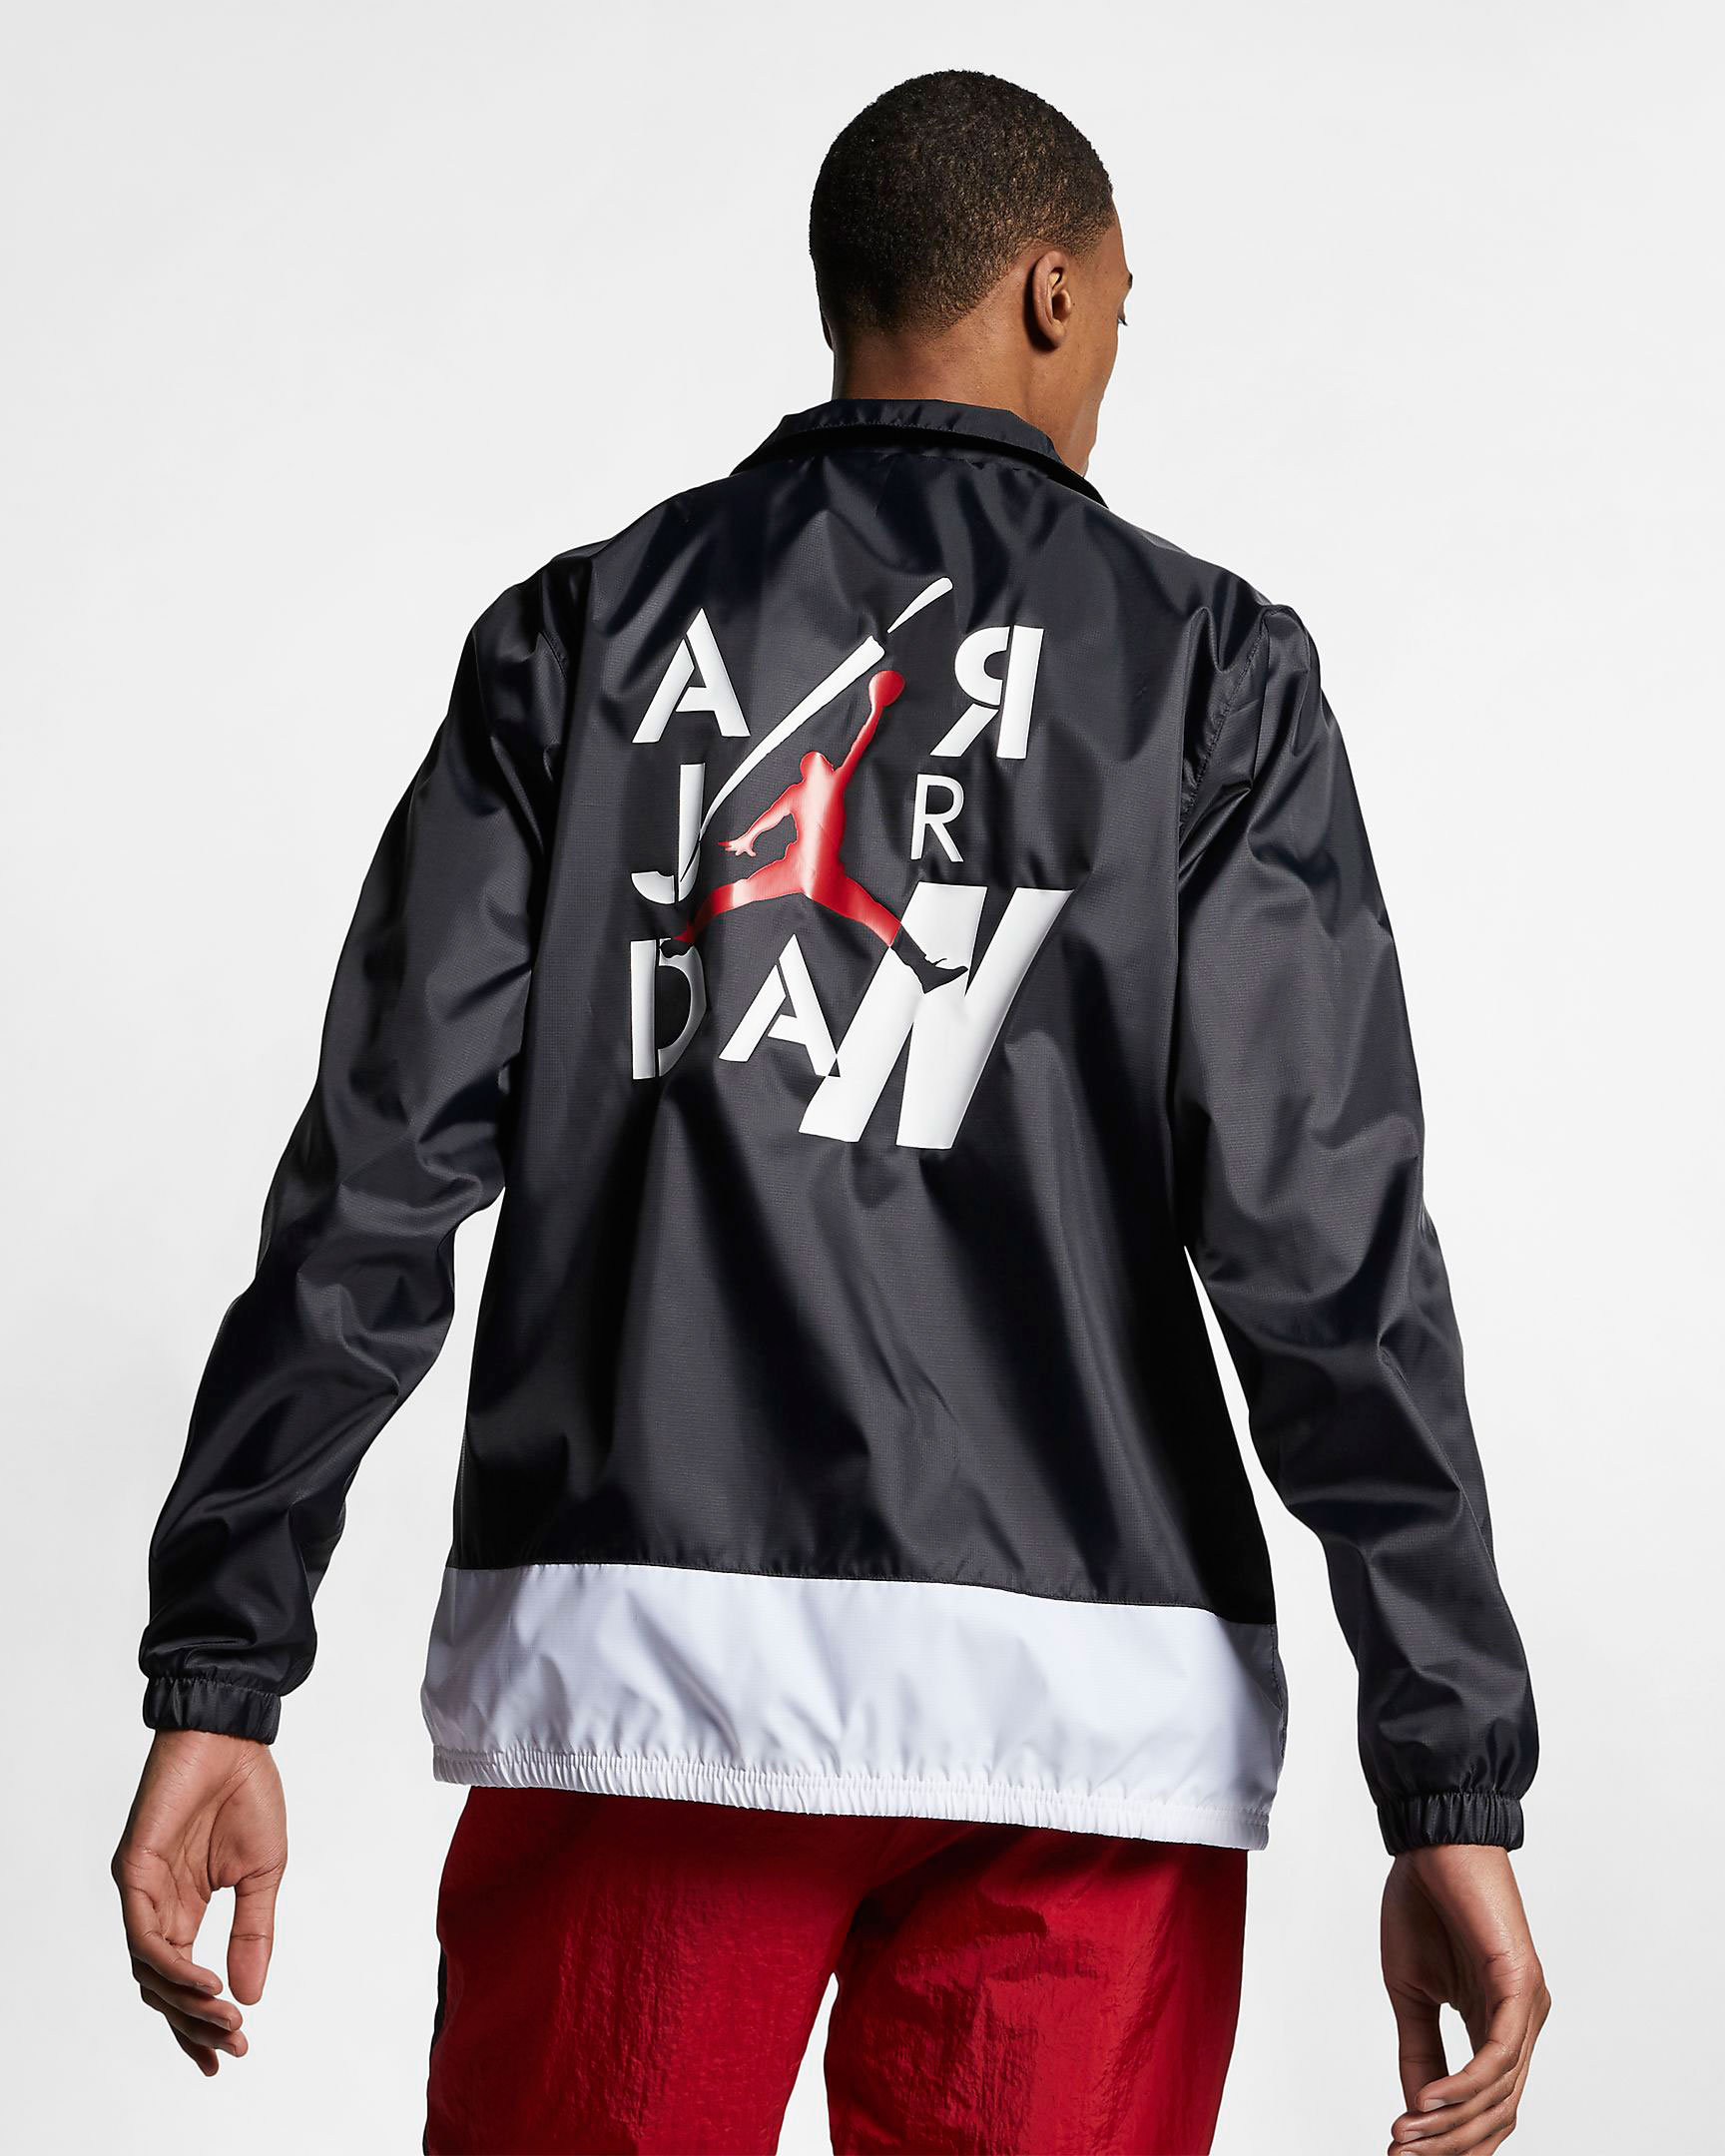 air-jordan-4-bred-2019-jacket-2